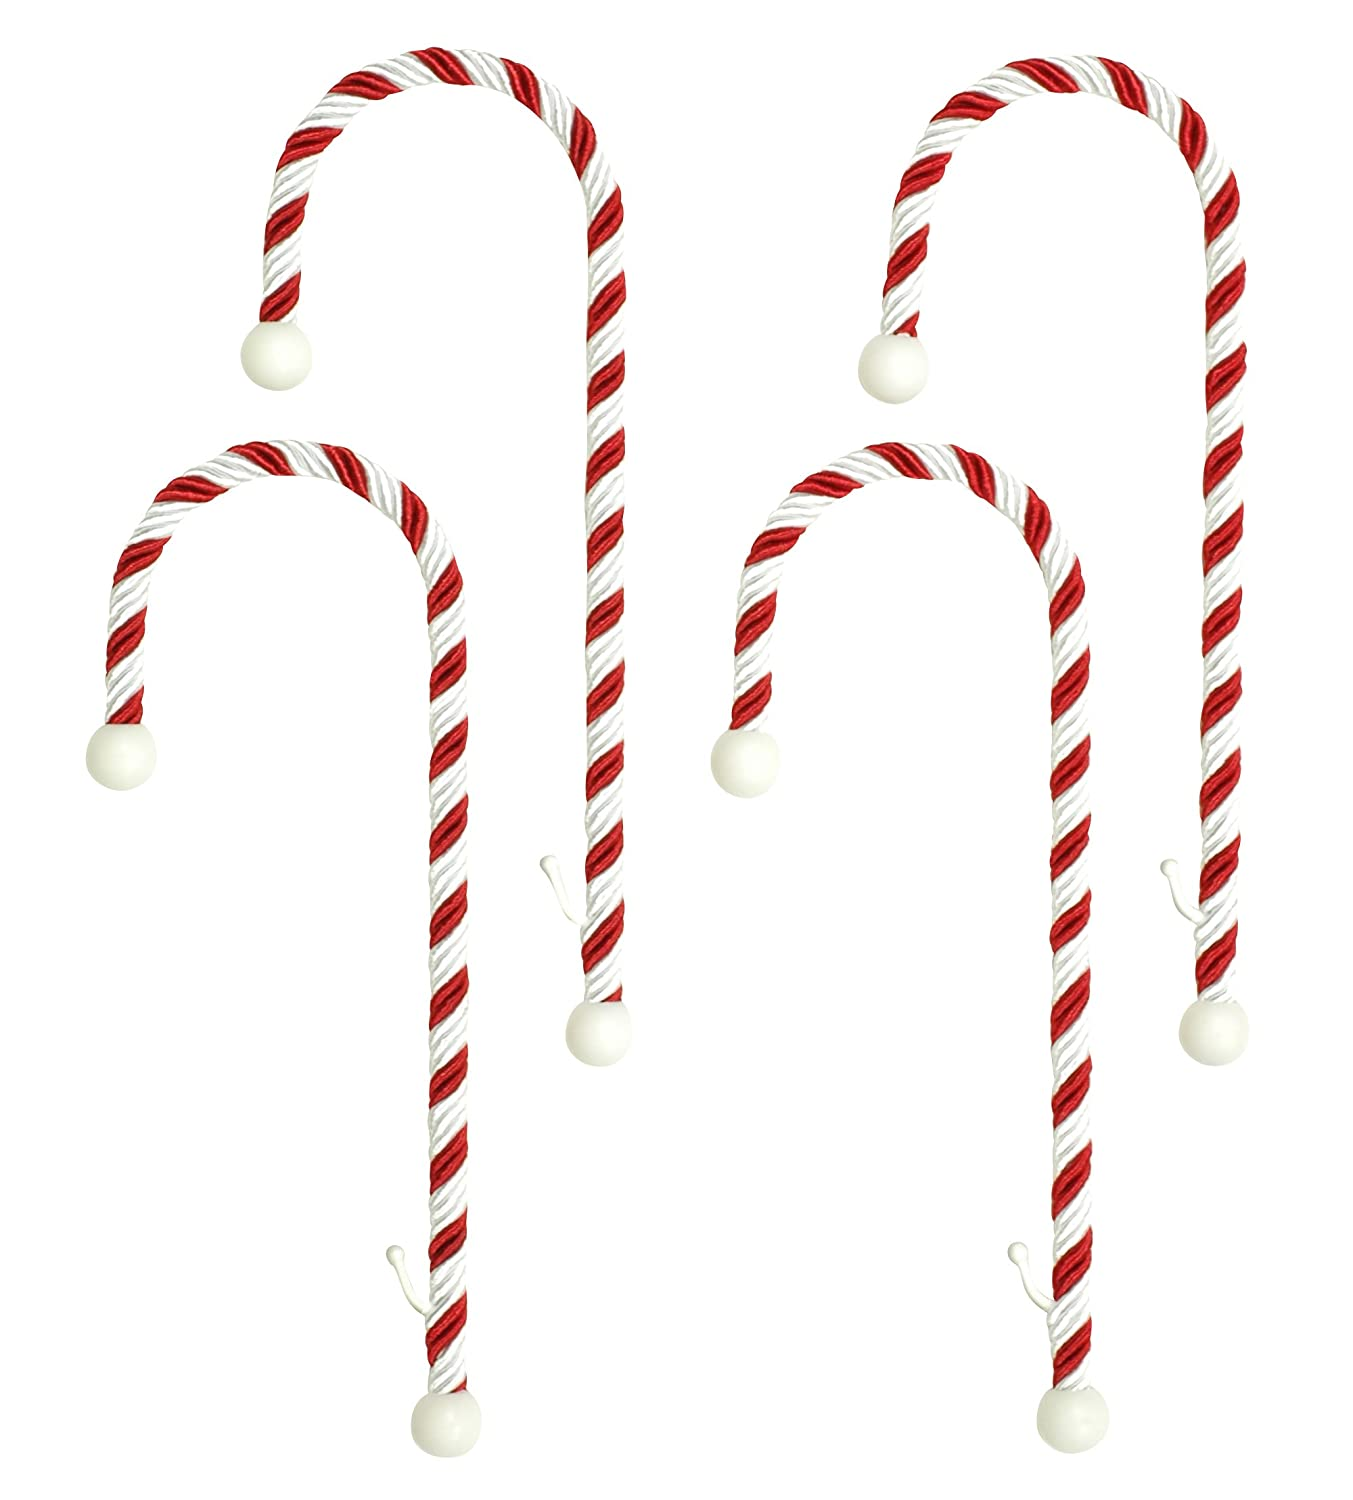 Haute-Décor Candy Cane Stocking Holder, 4-Pack (Red and White) CC0402R